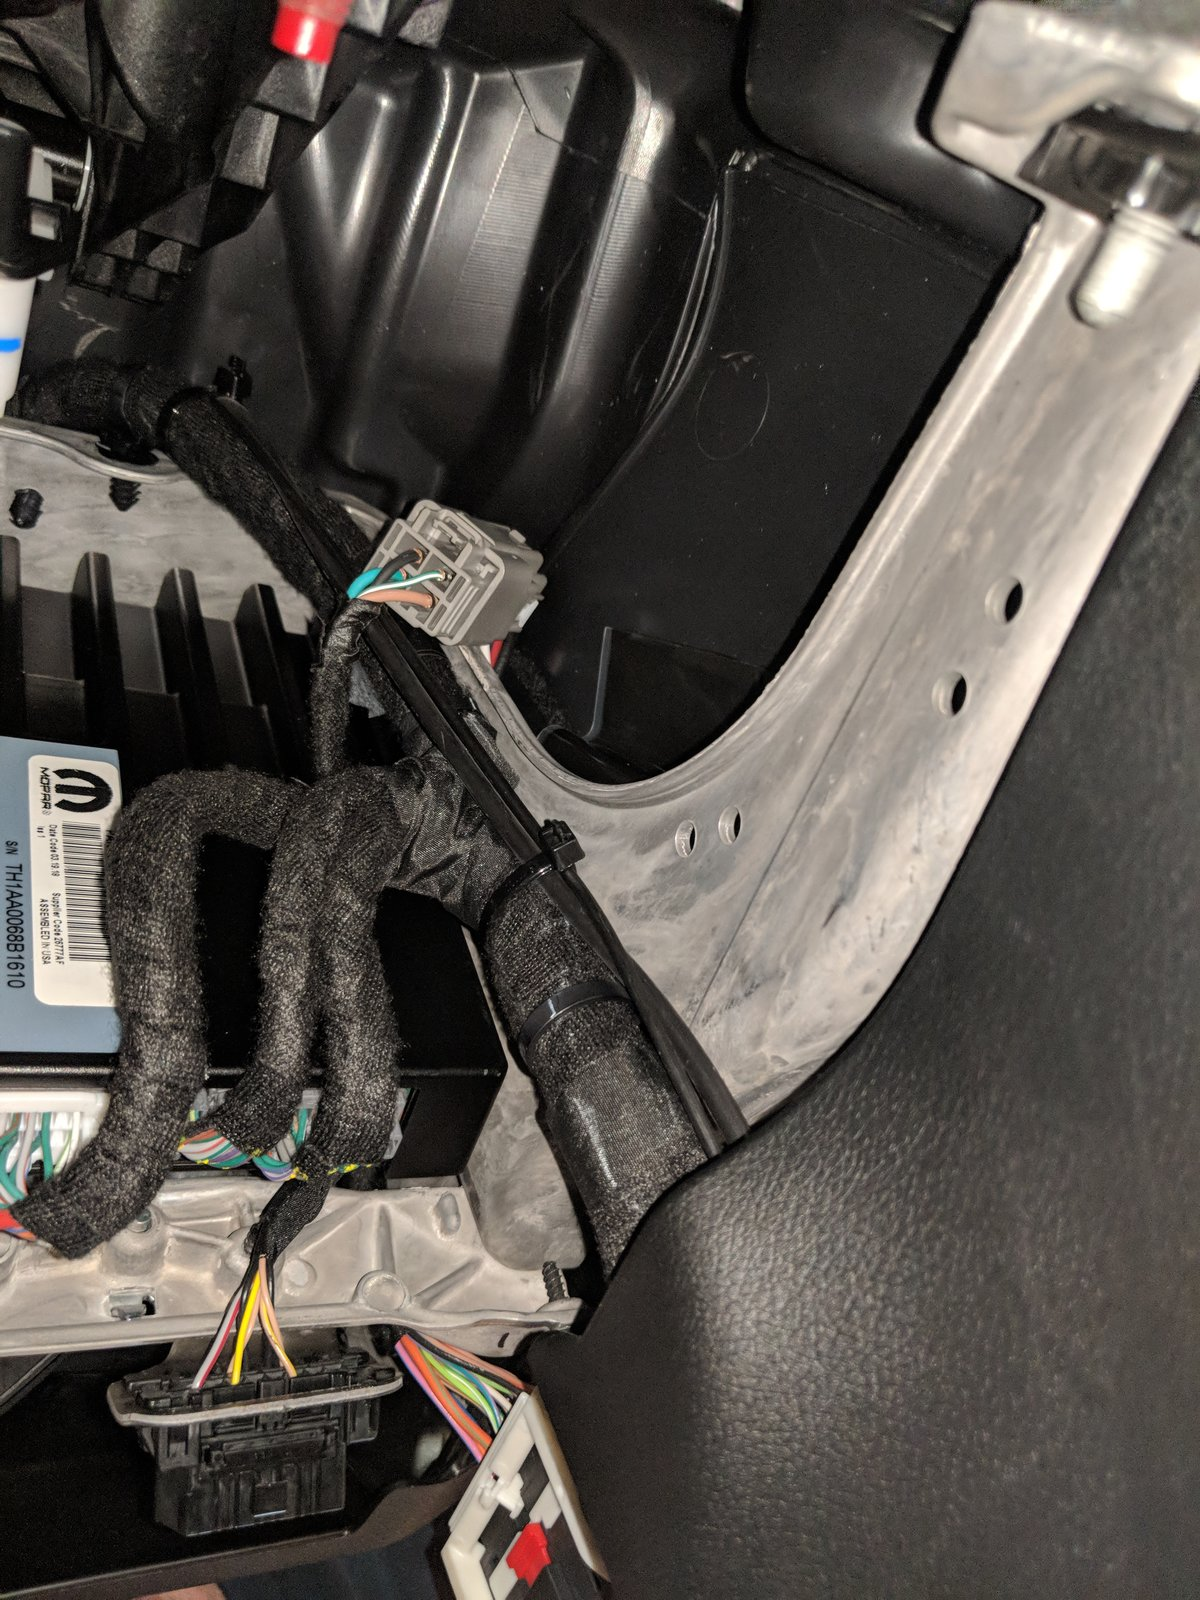 DIY Trailer ke Controller Install | 2018+ Jeep Wrangler ... on jeep trailer hitch, jeep trailer accessories, jeep instrument cluster, jeep electrical harness, jeep door locks, jeep trailer lights, jeep trailer brake controller, jeep seat covers, jeep alternator wiring, jeep ignition switch, jeep towing, jeep cold air intake,